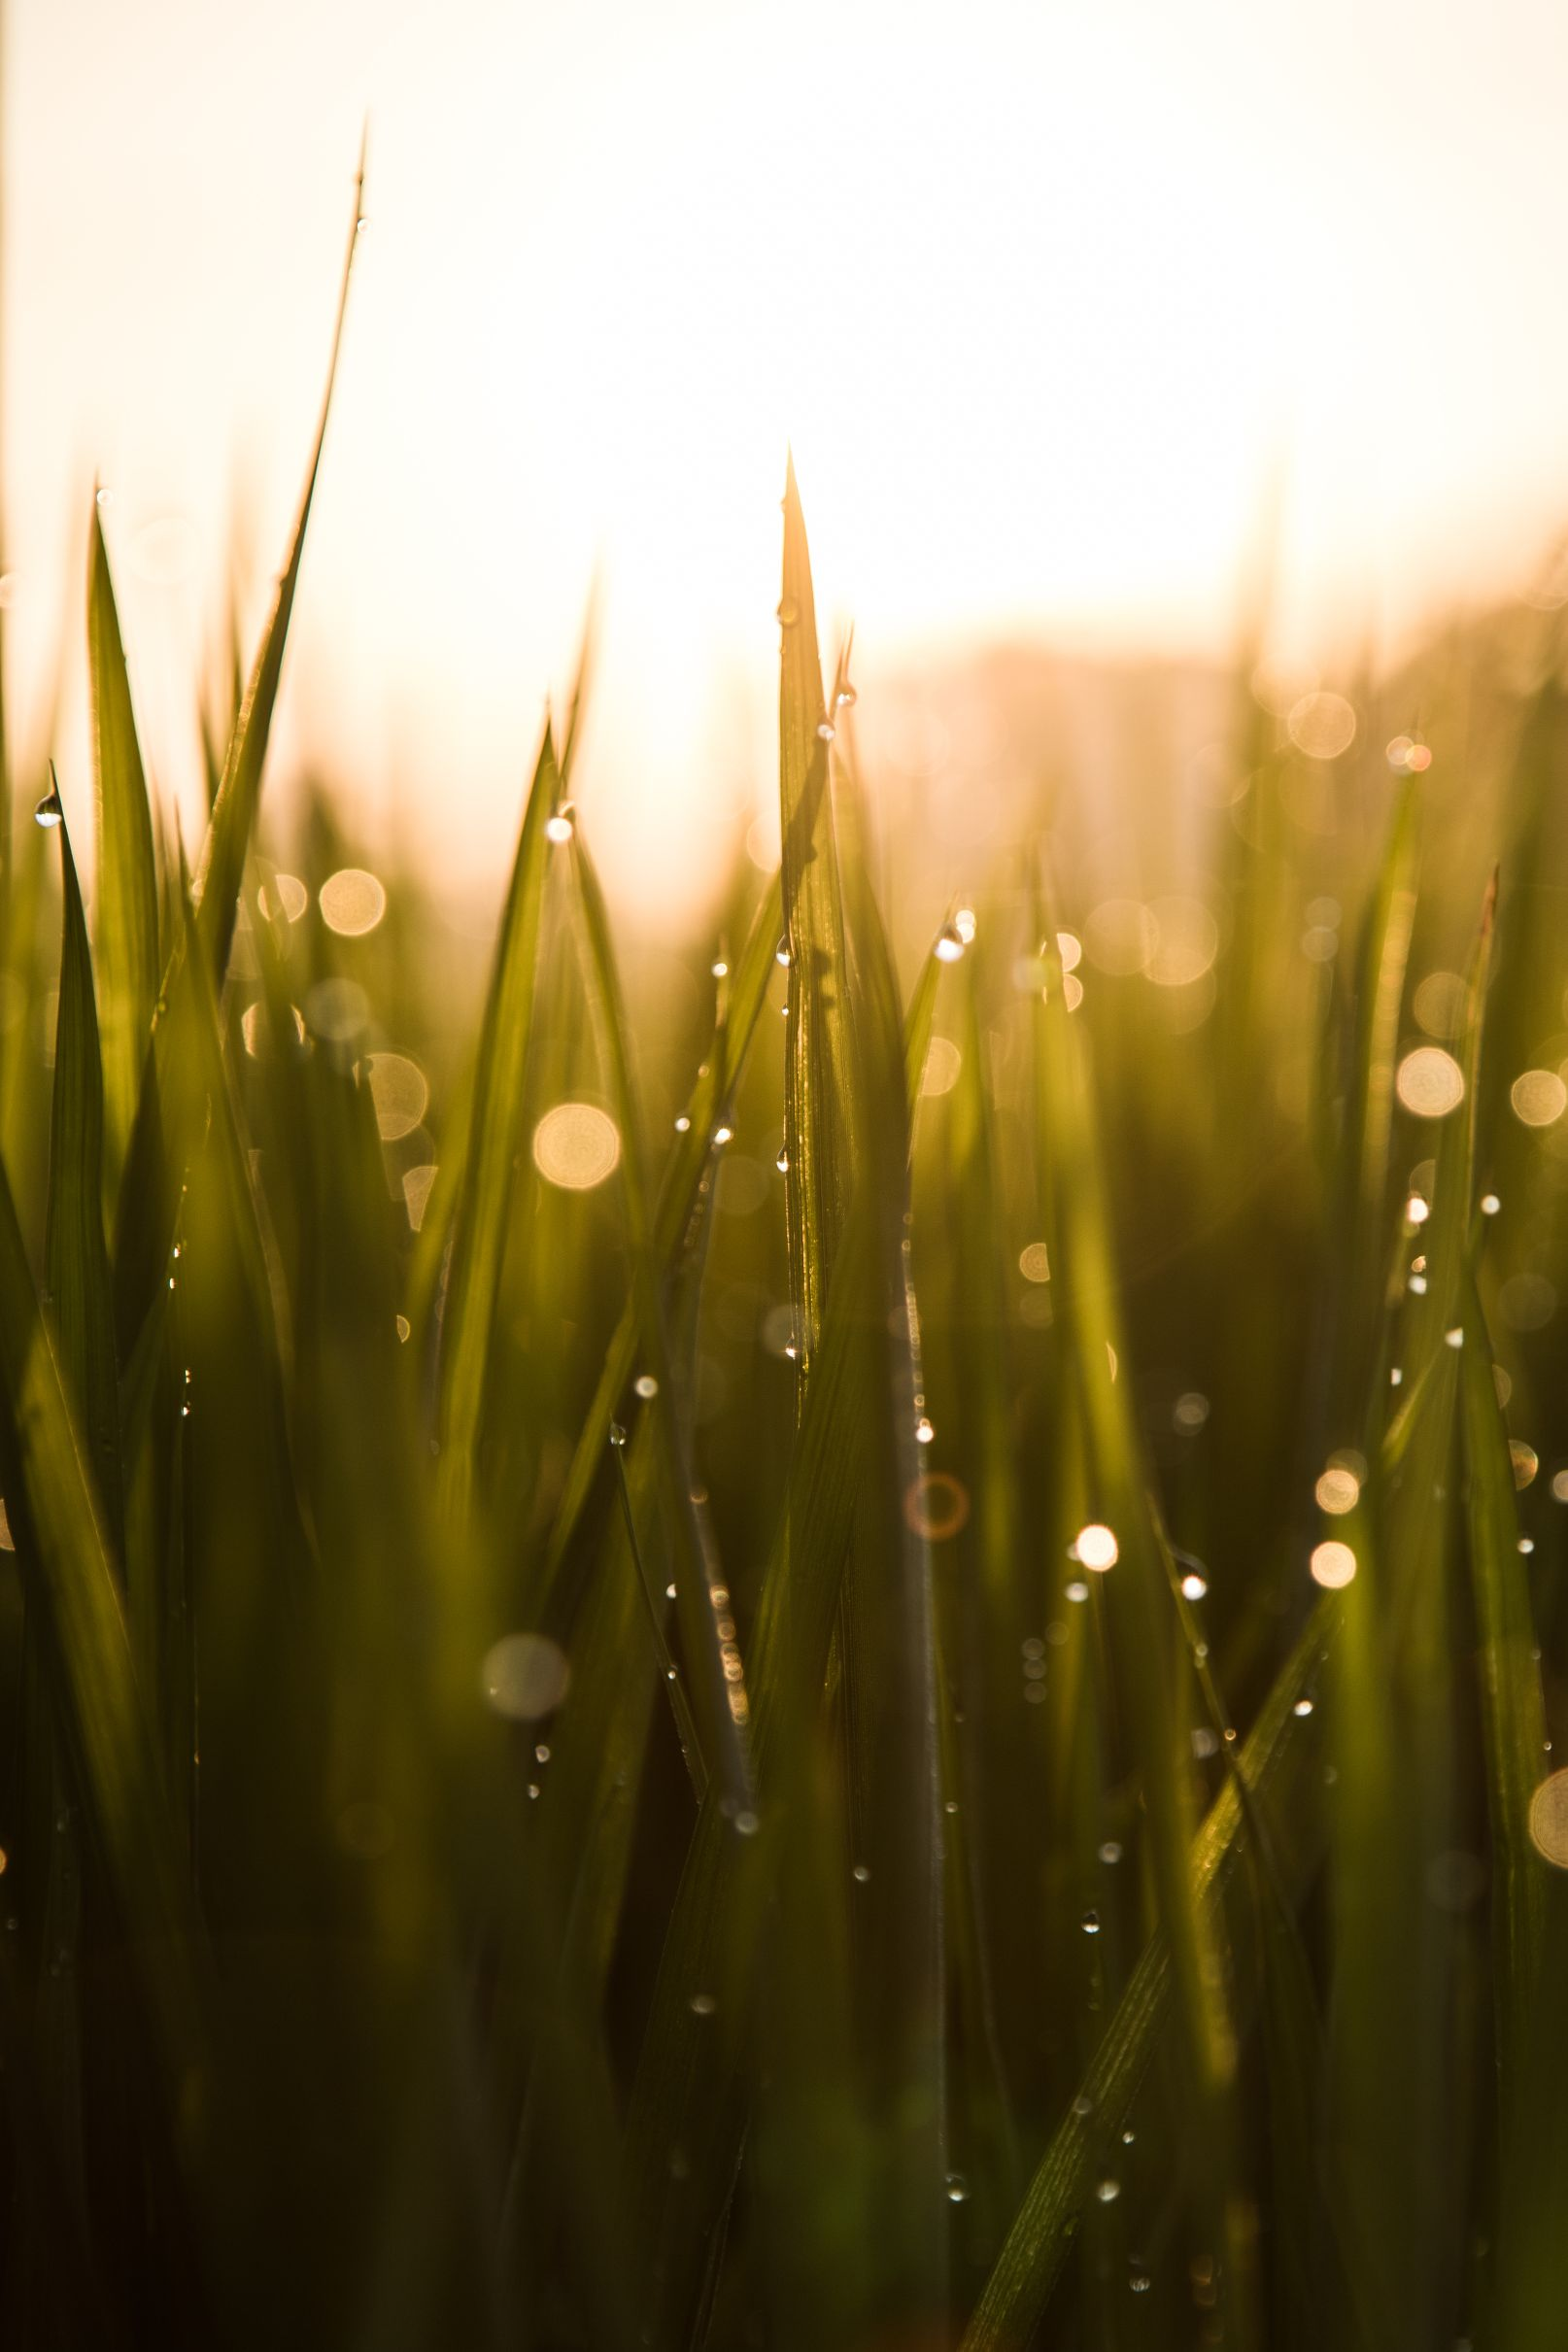 Water droplets on long grass.